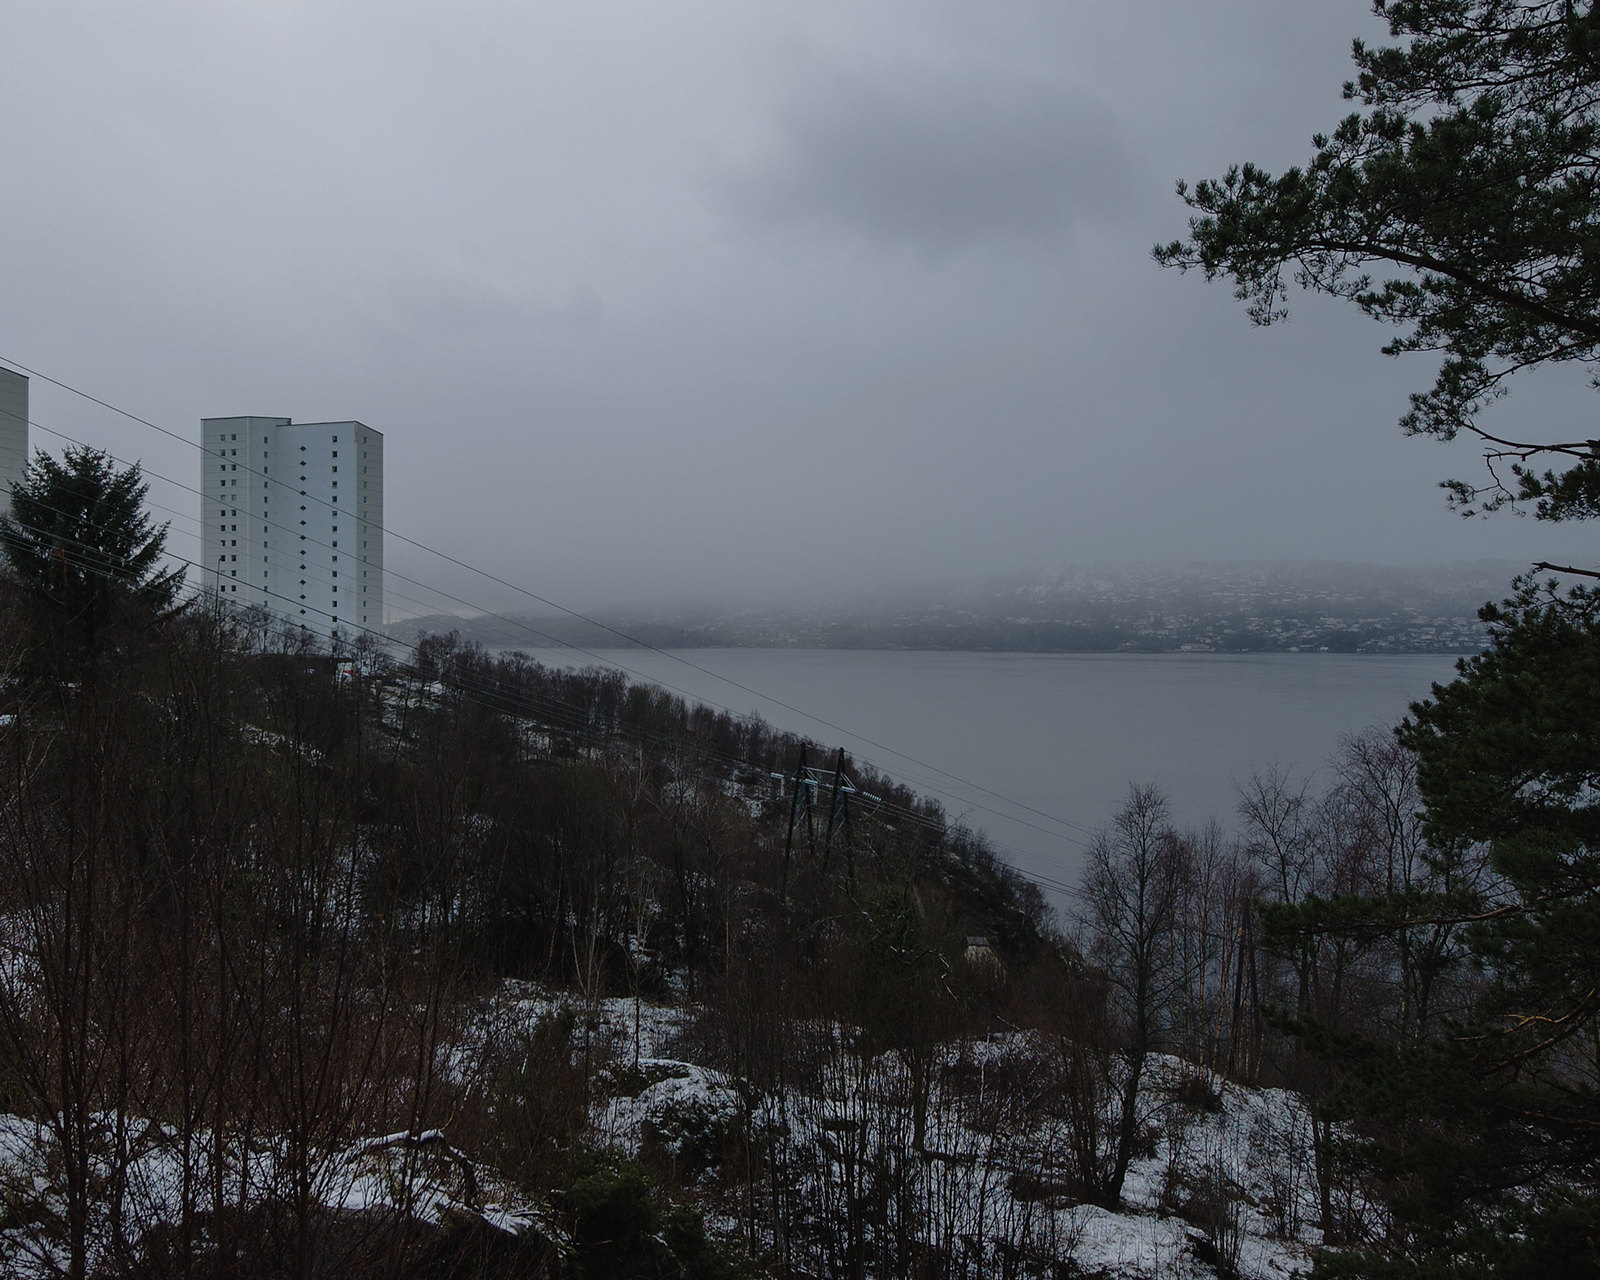 Apartment building, grey sky, naked trees, view over fjord and island in the distance.